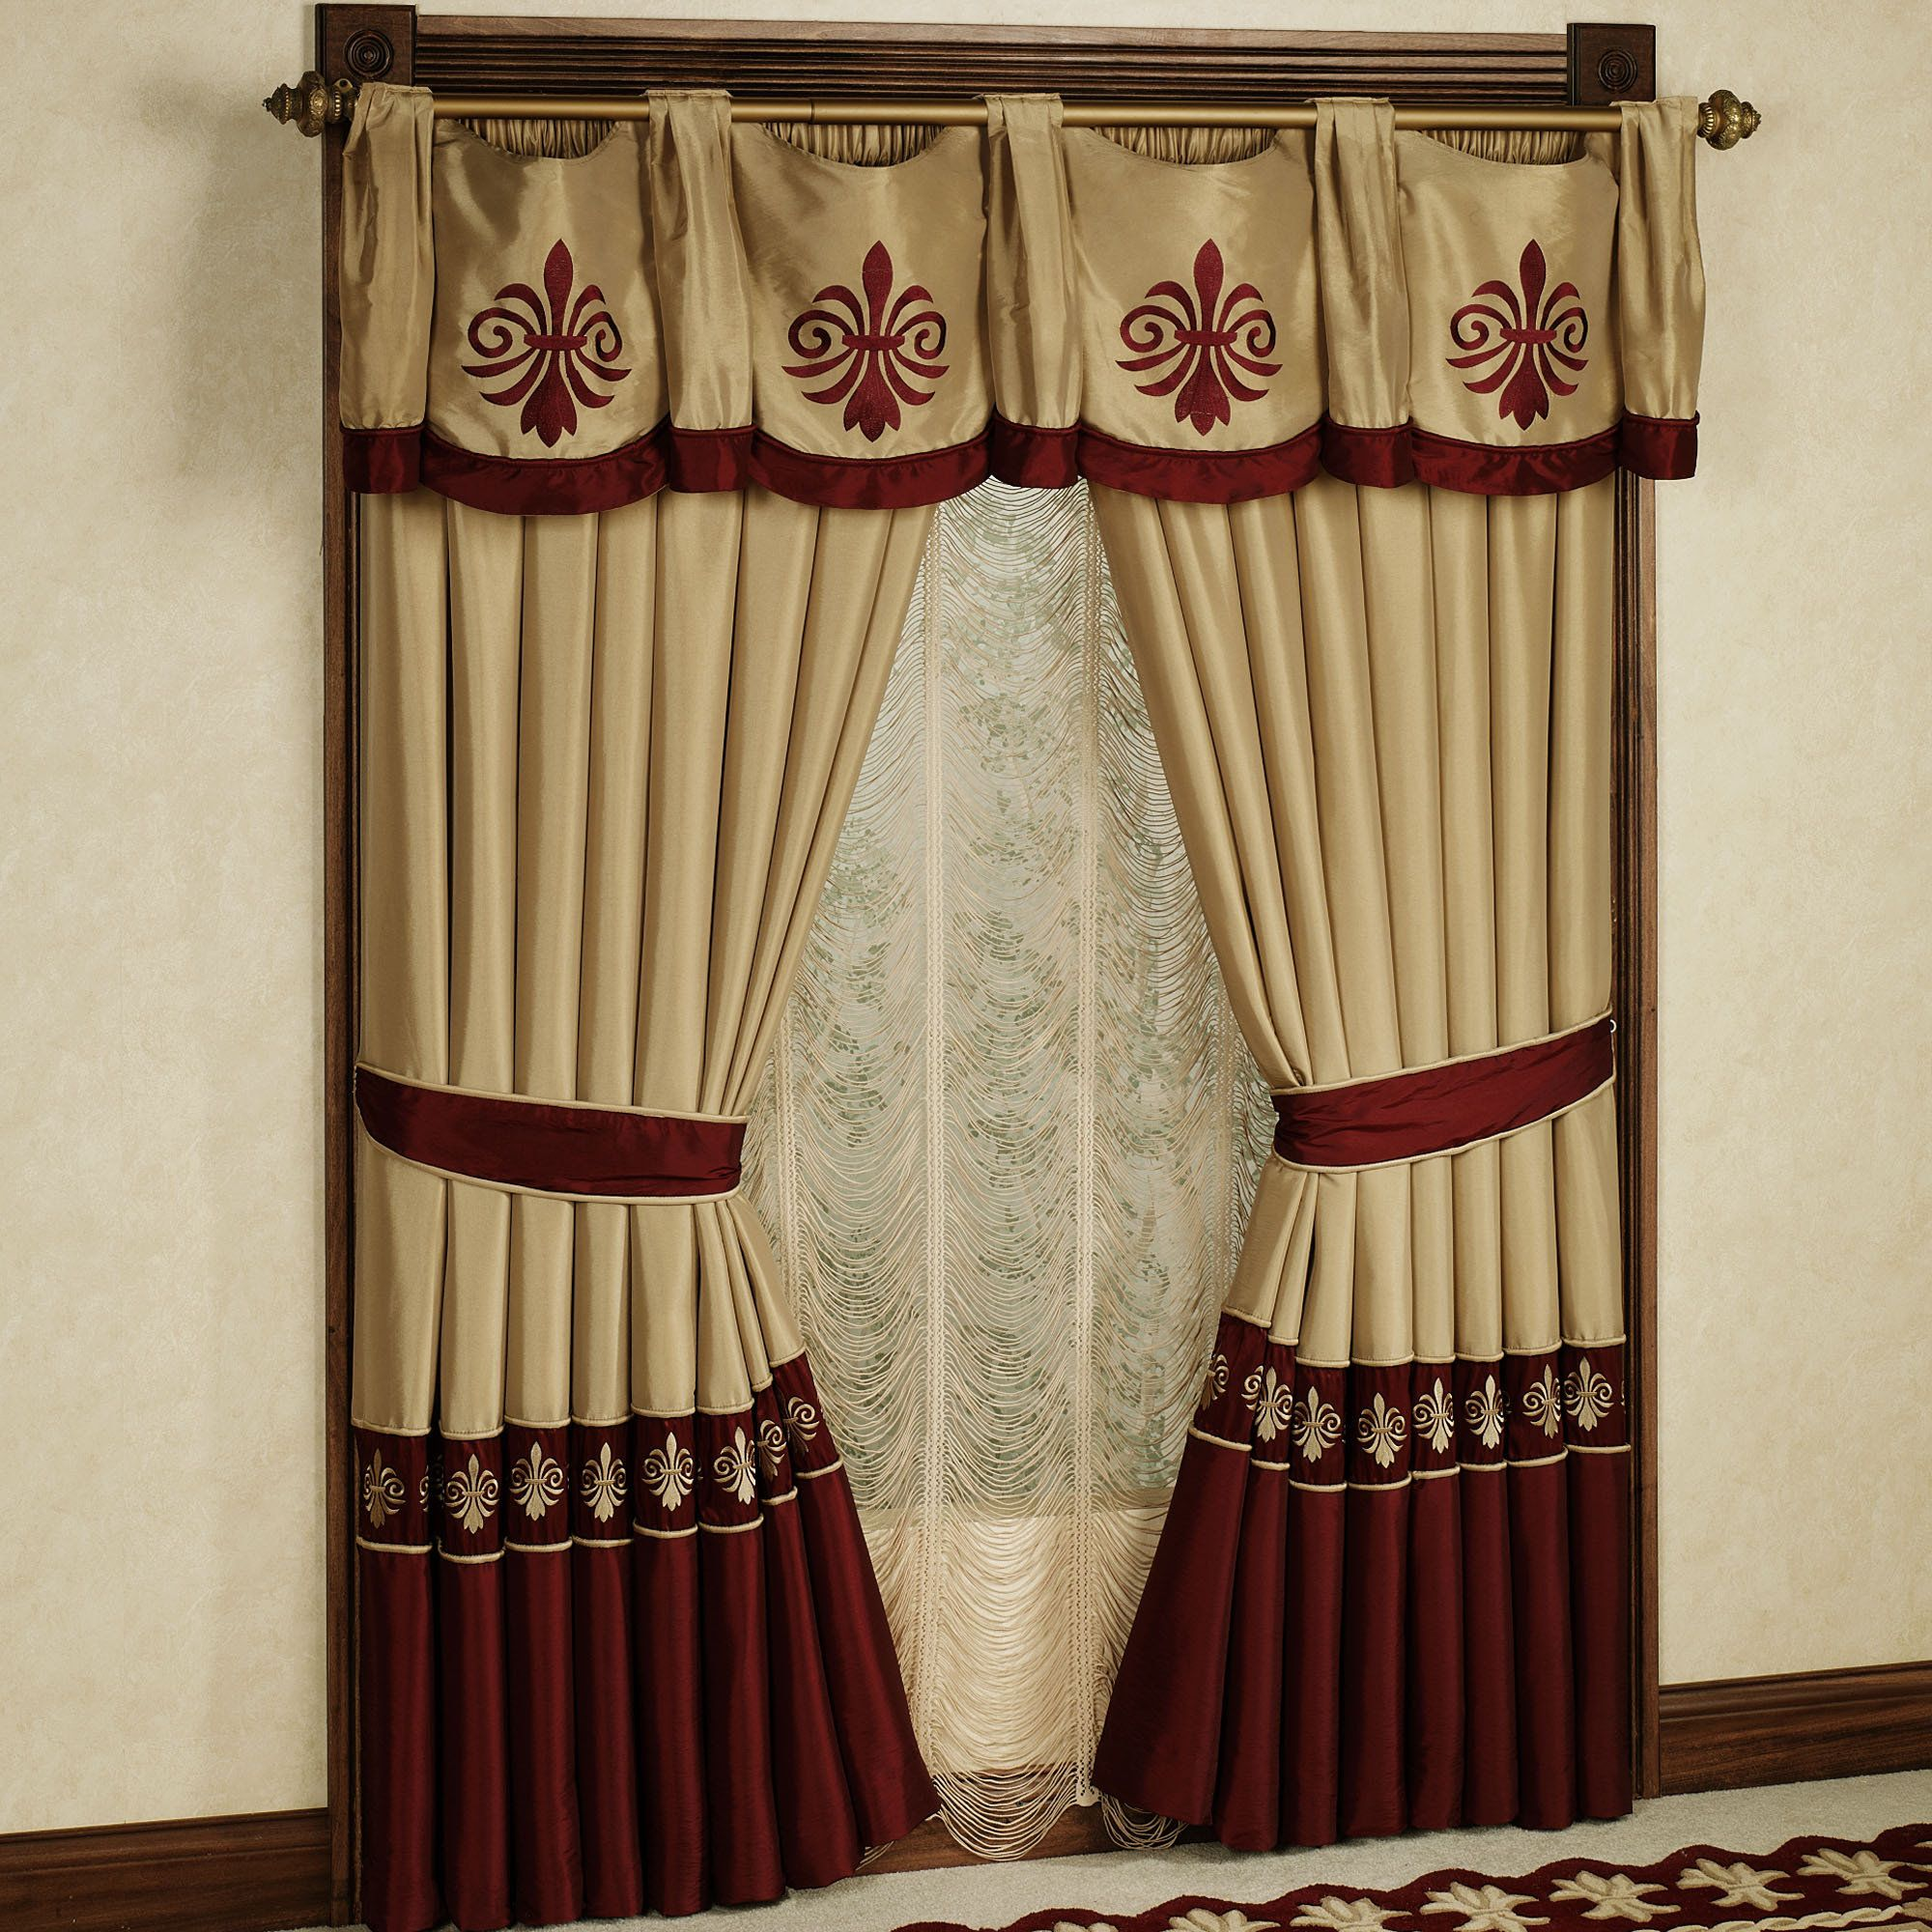 Full Size of Curtain:curtains Bathroom Impressive Images Concept Shower  Curtain Liners Odd Sizes Design ...